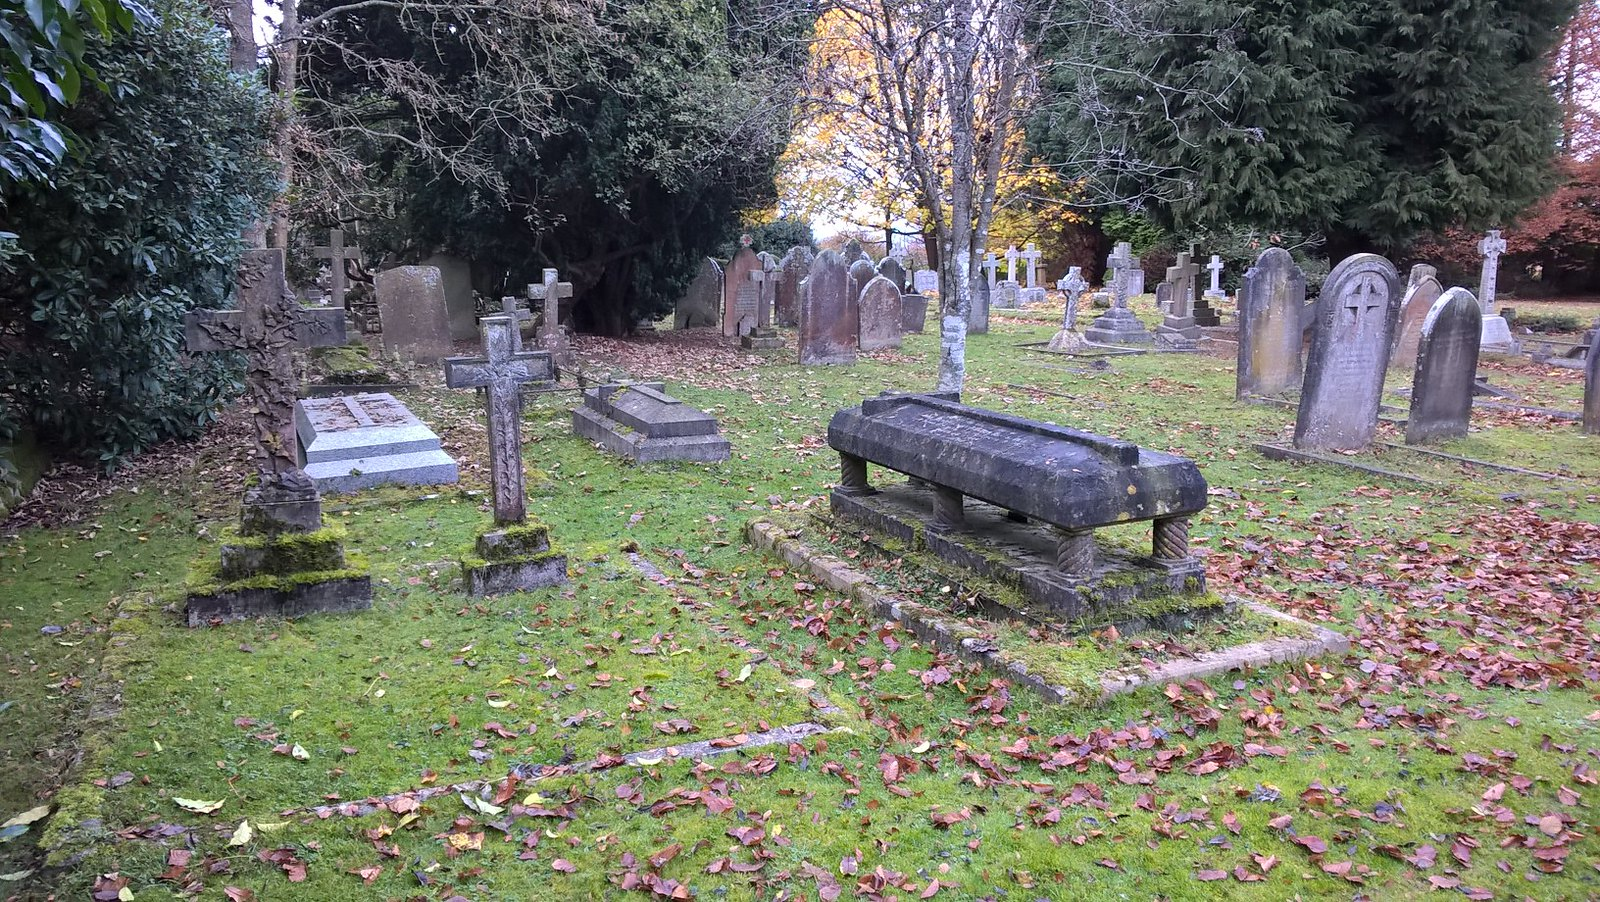 The Graveyard Shift Burial place of a member of the clergy, church of St Alban, Sussex